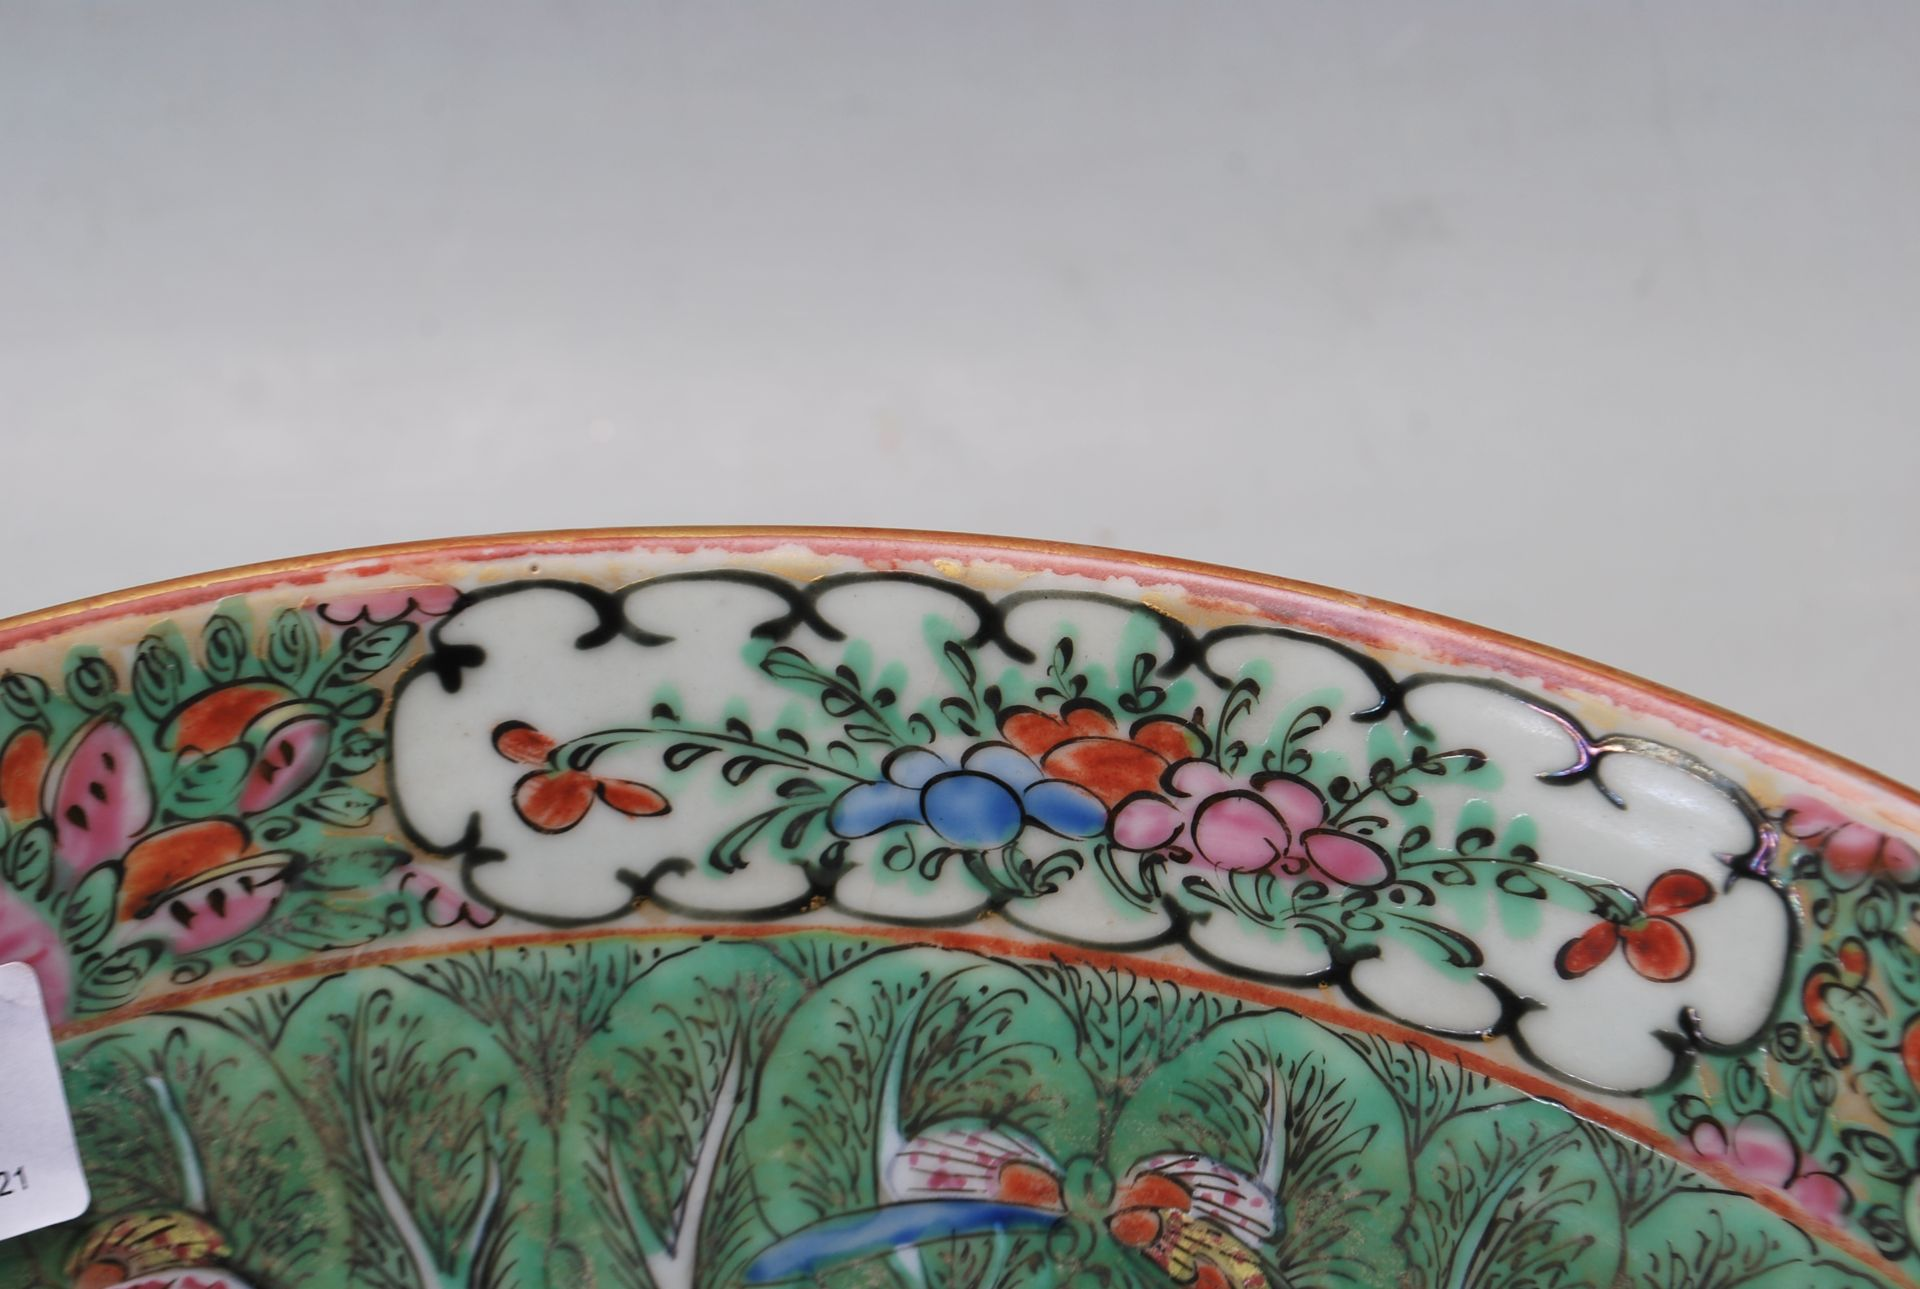 19TH CENTURY CHINESE ORIENTAL CENTRE PIECE BOWL - Image 8 of 11